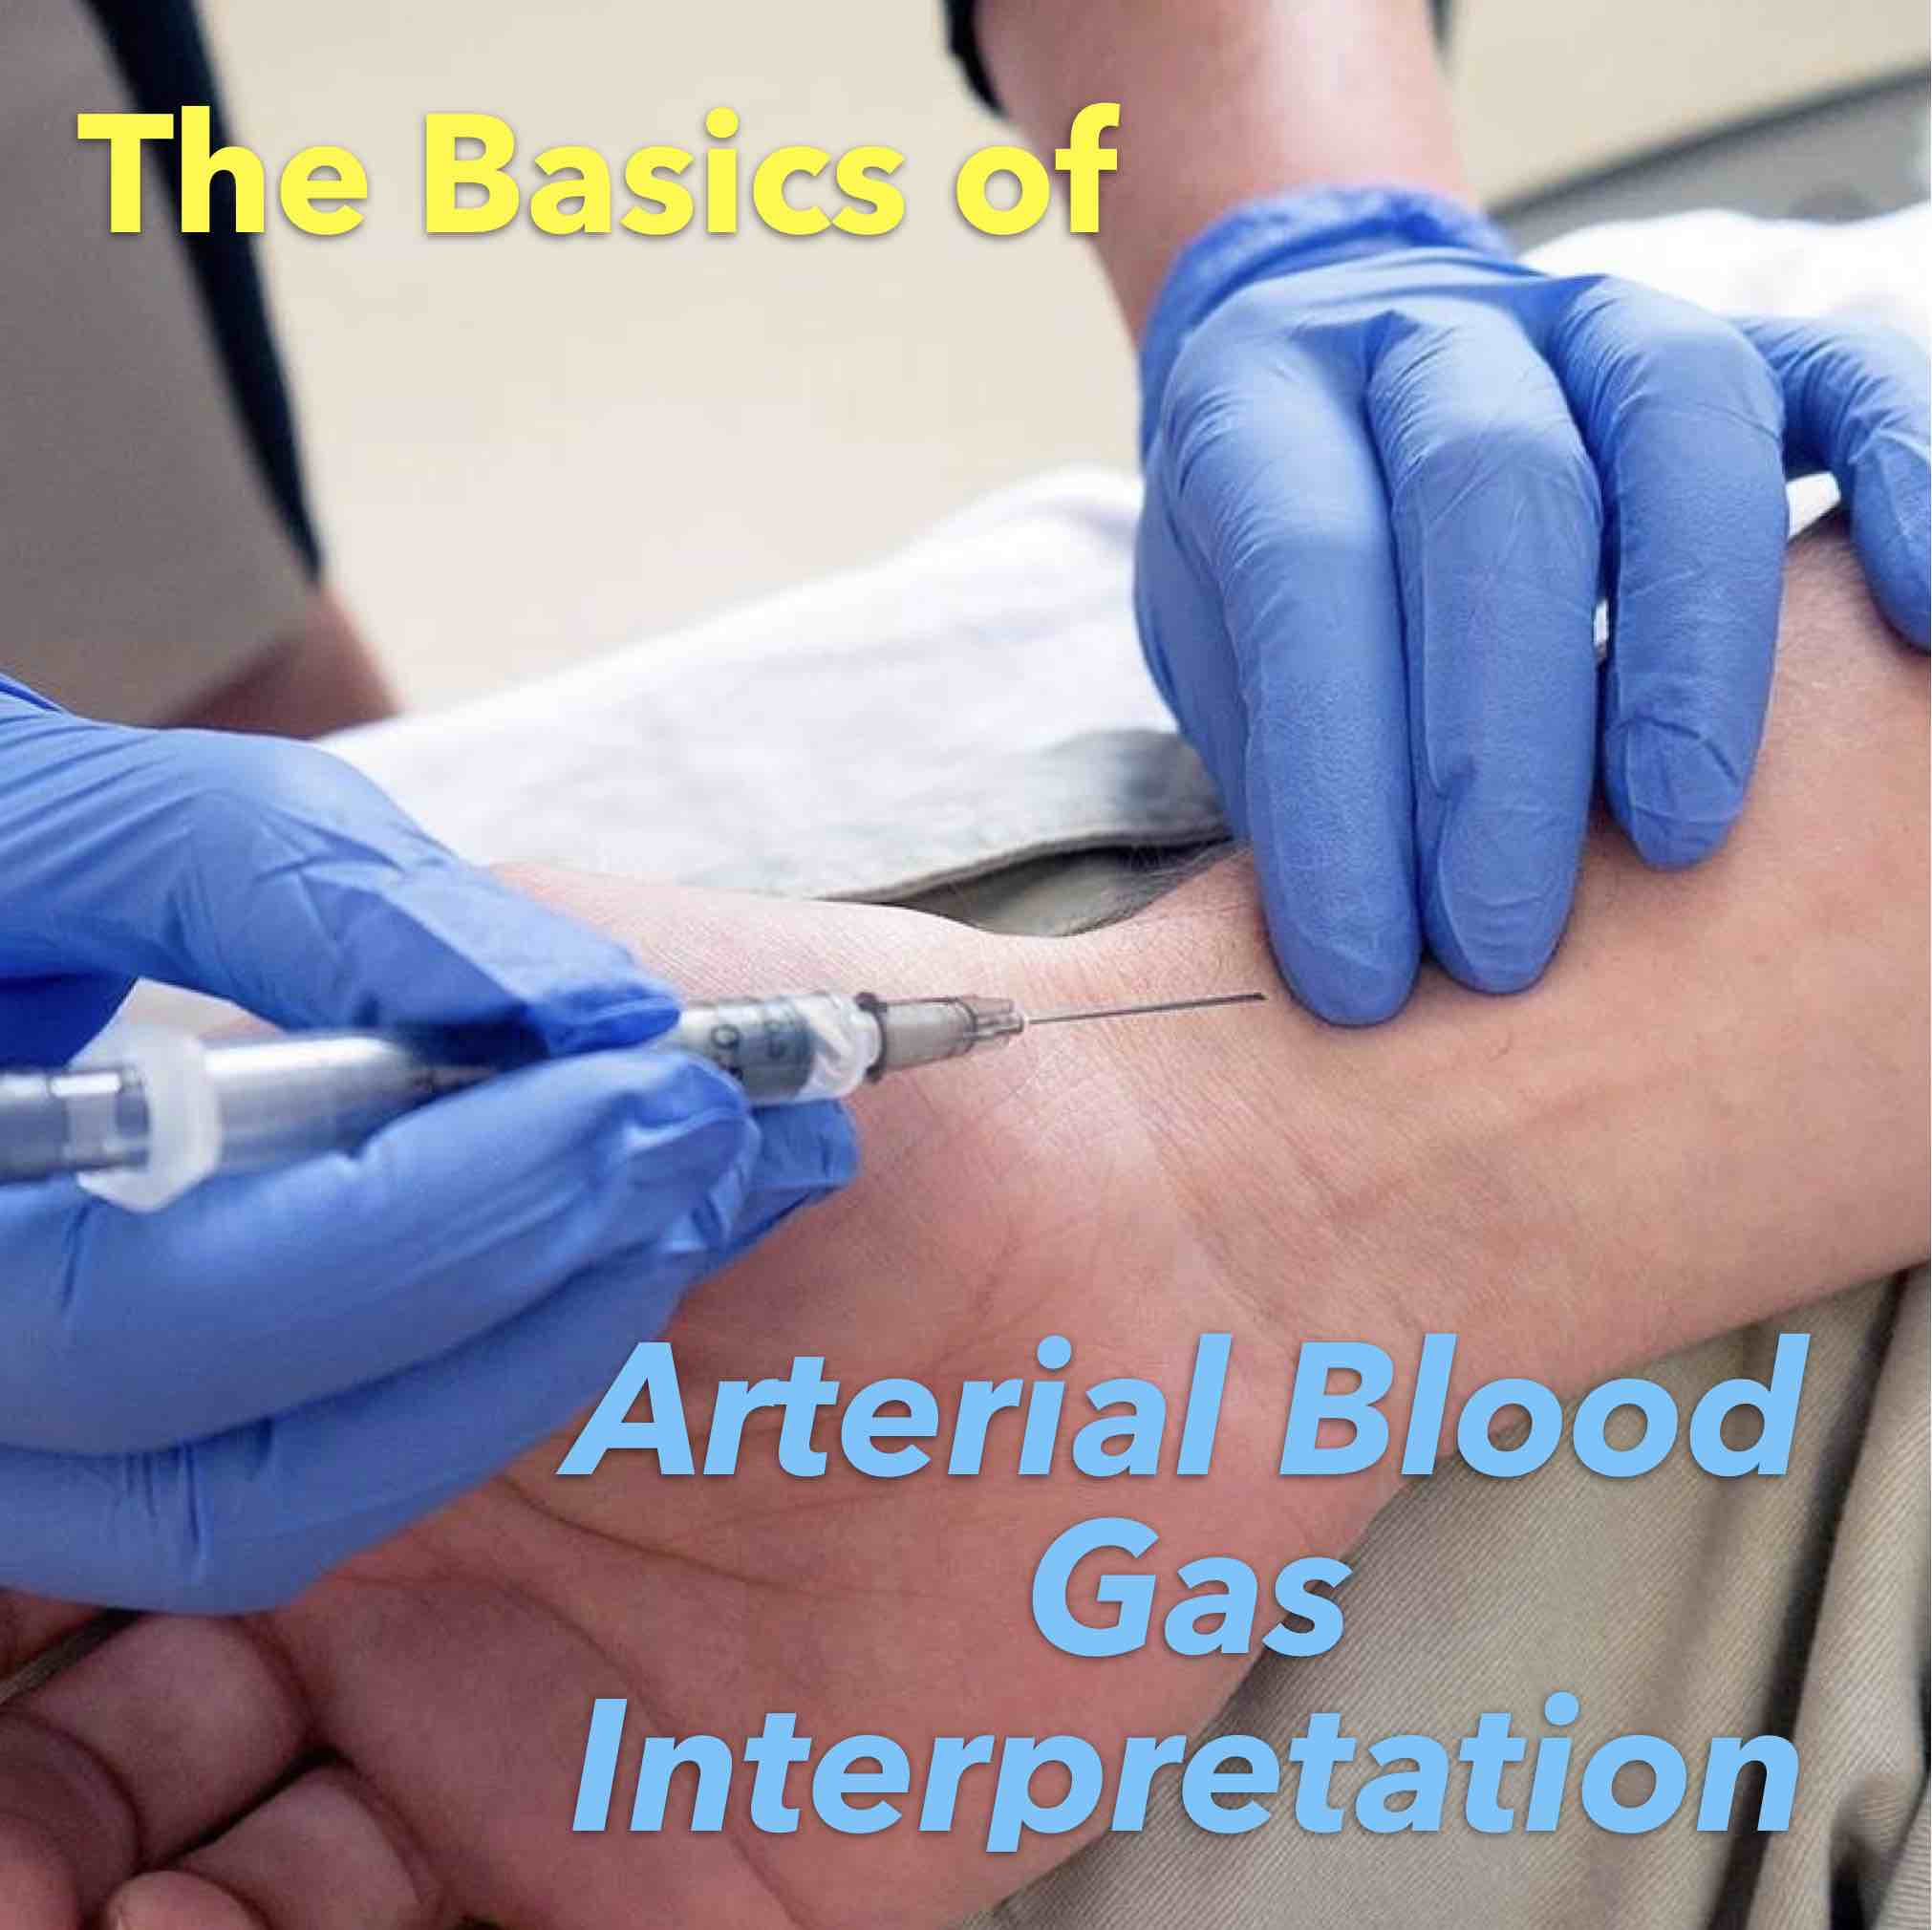 The Basics of Arterial Blood Gas Interpretation